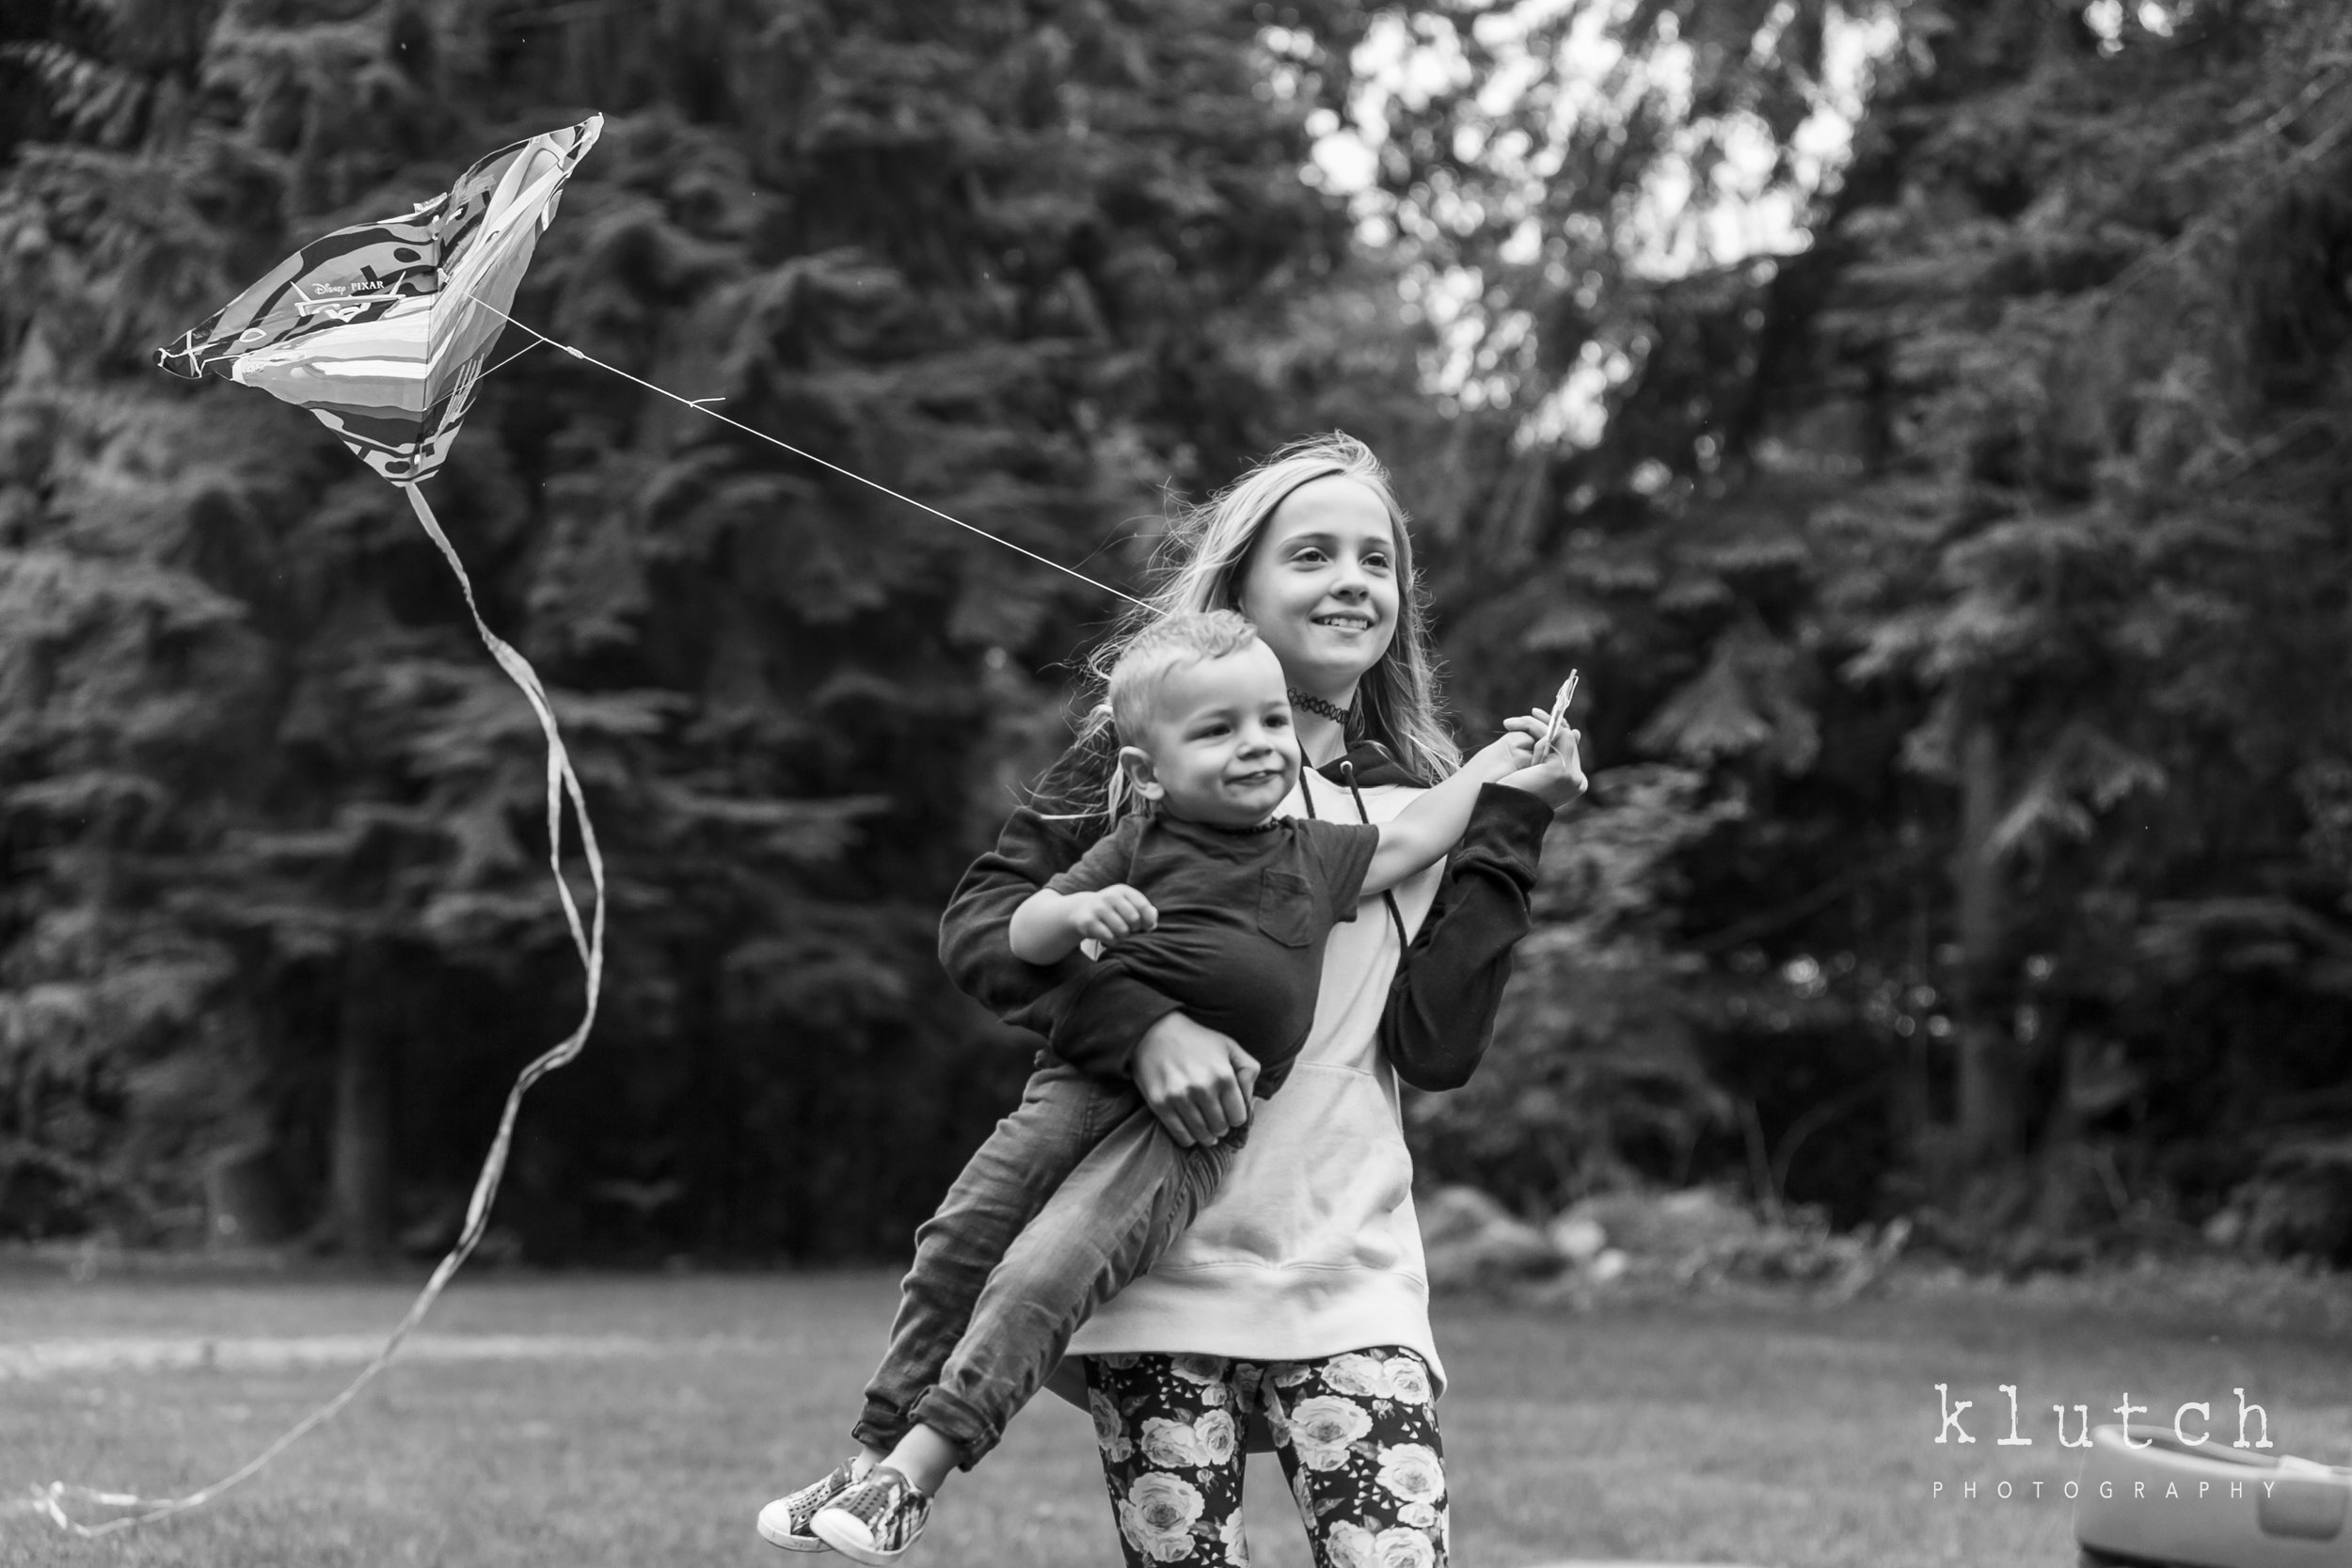 Surrey Family Photographer. Vancouver family photographer, klutch Photography, documentary photography, Vancouver documentary photographer, candid photography, lifestyle photographer, a day in the life session, family photography, Vancouver Photographer, Surrey Family Photographer, White Rock family Photographer, Dina Ferreira Stoddard, kids flying a kite together-4279.jpg